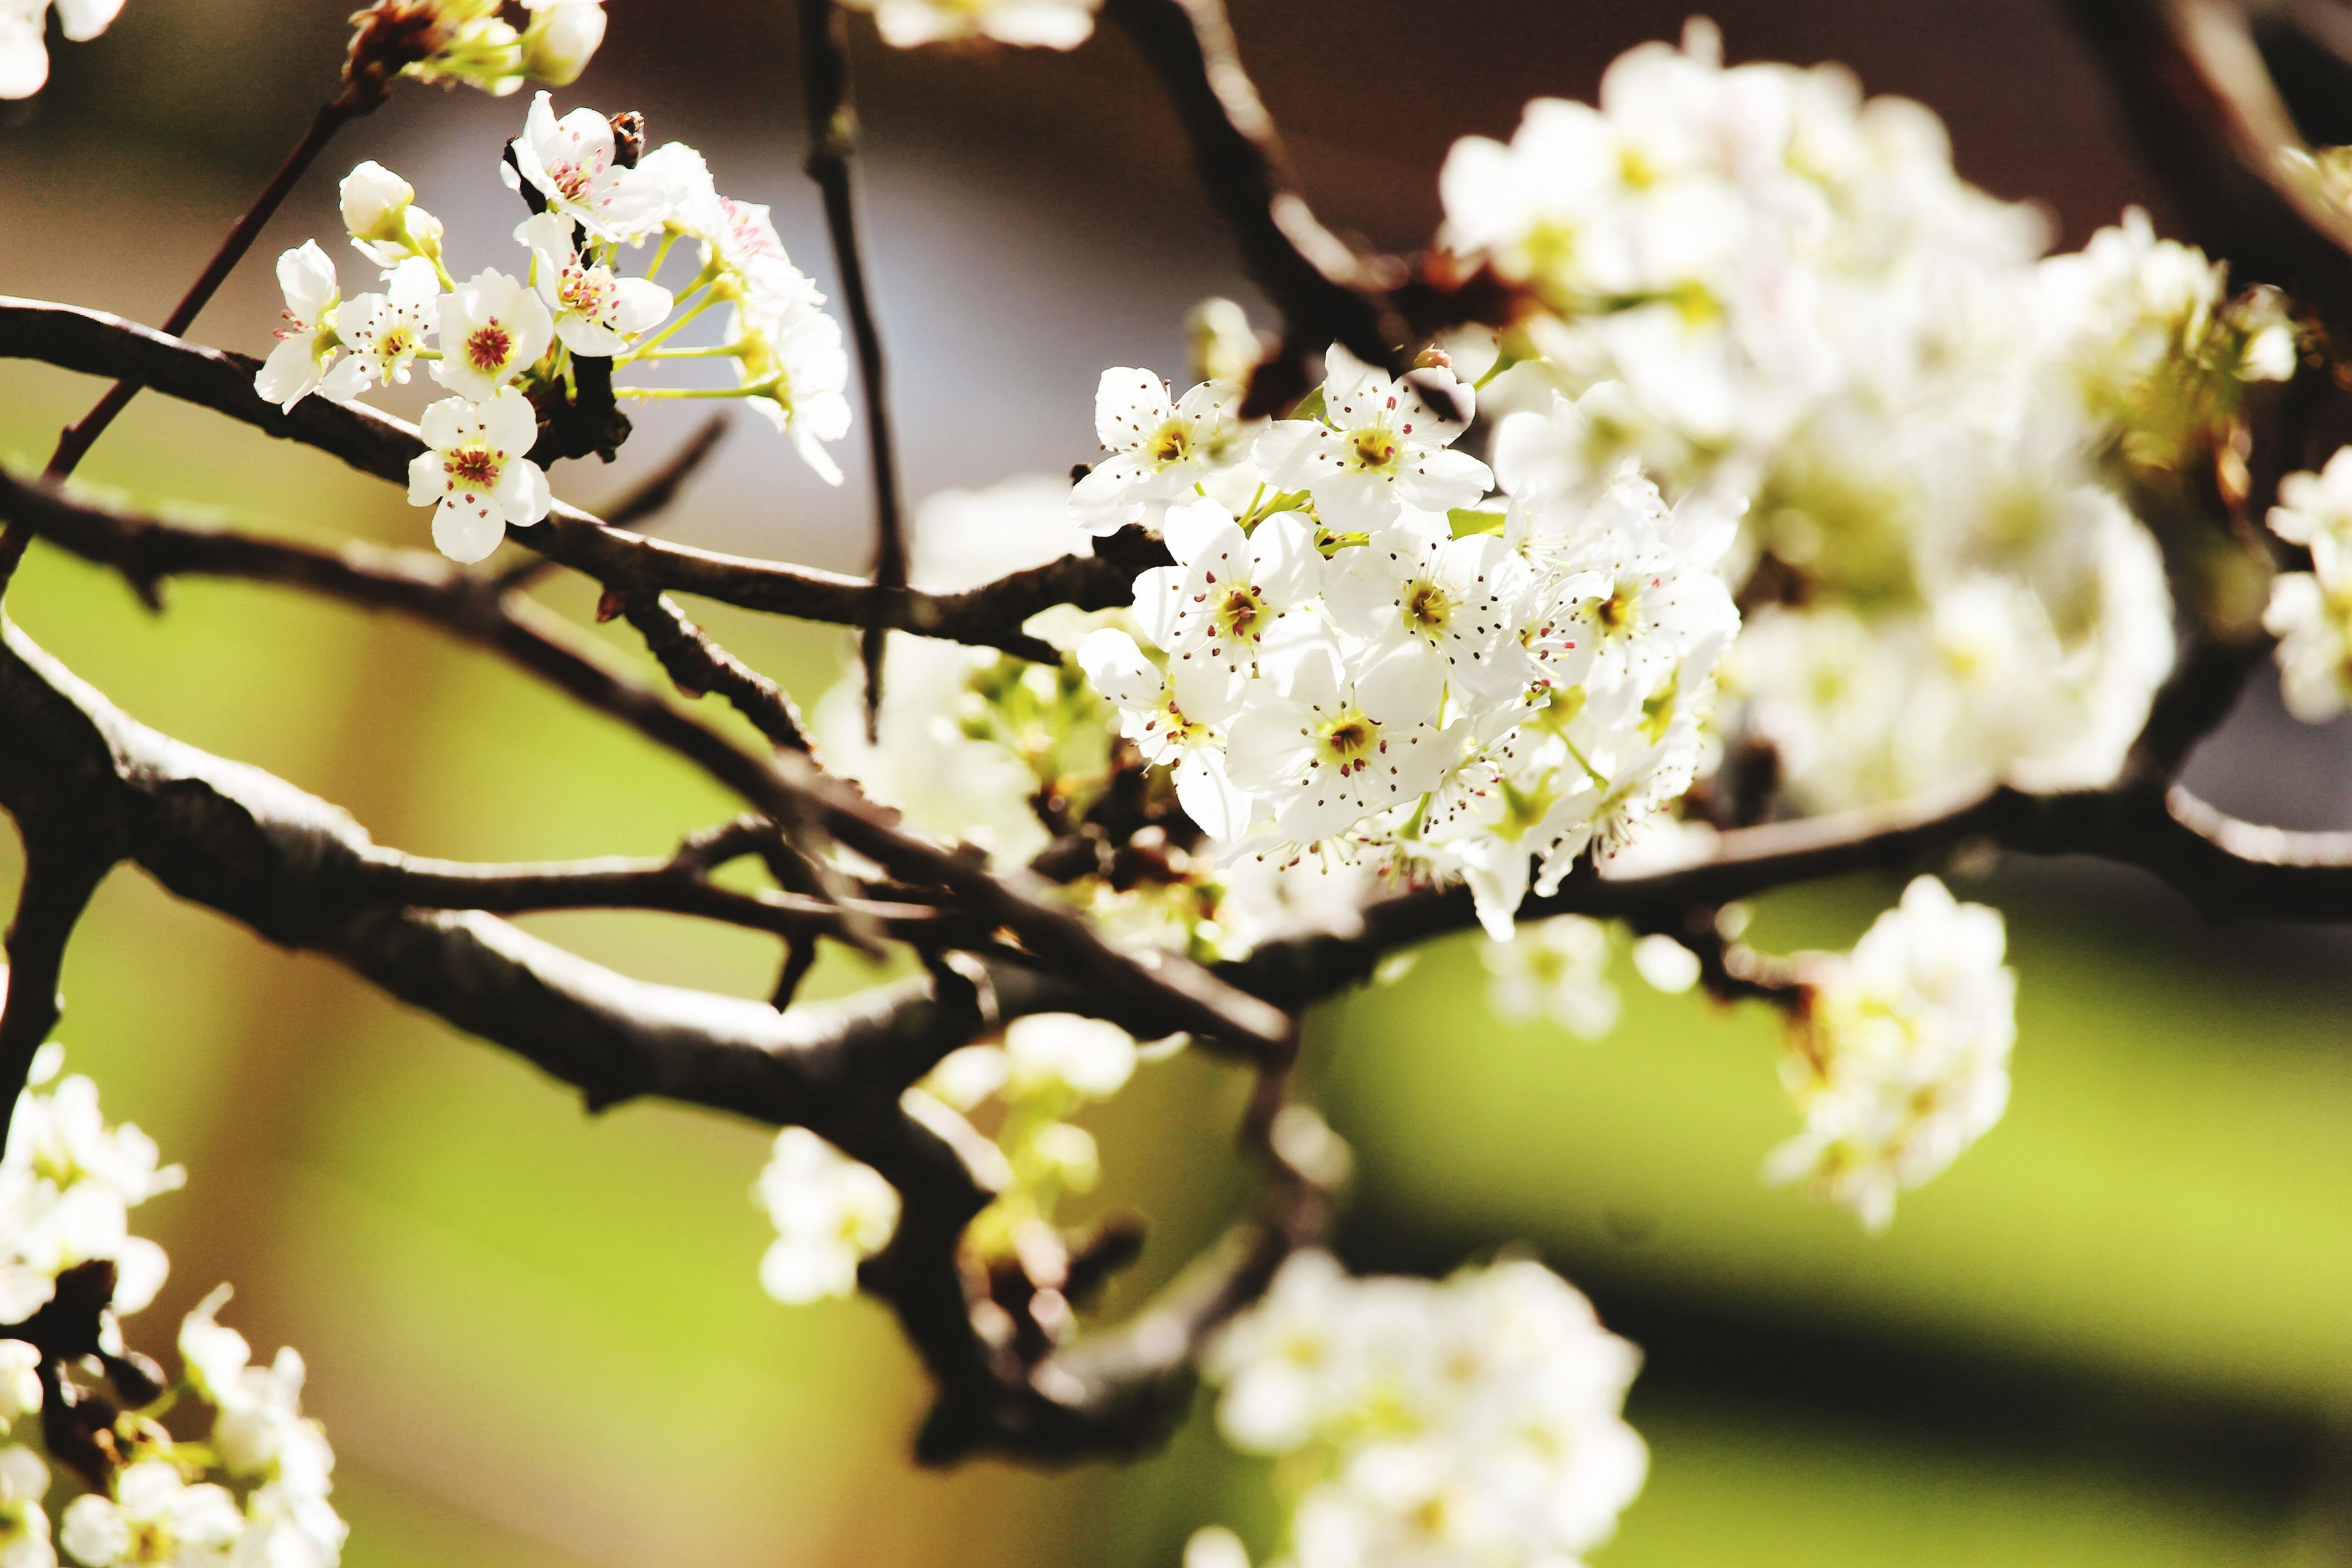 flower, freshness, fragility, growth, white color, petal, beauty in nature, branch, focus on foreground, blossom, nature, close-up, flower head, blooming, tree, cherry blossom, in bloom, twig, springtime, cherry tree